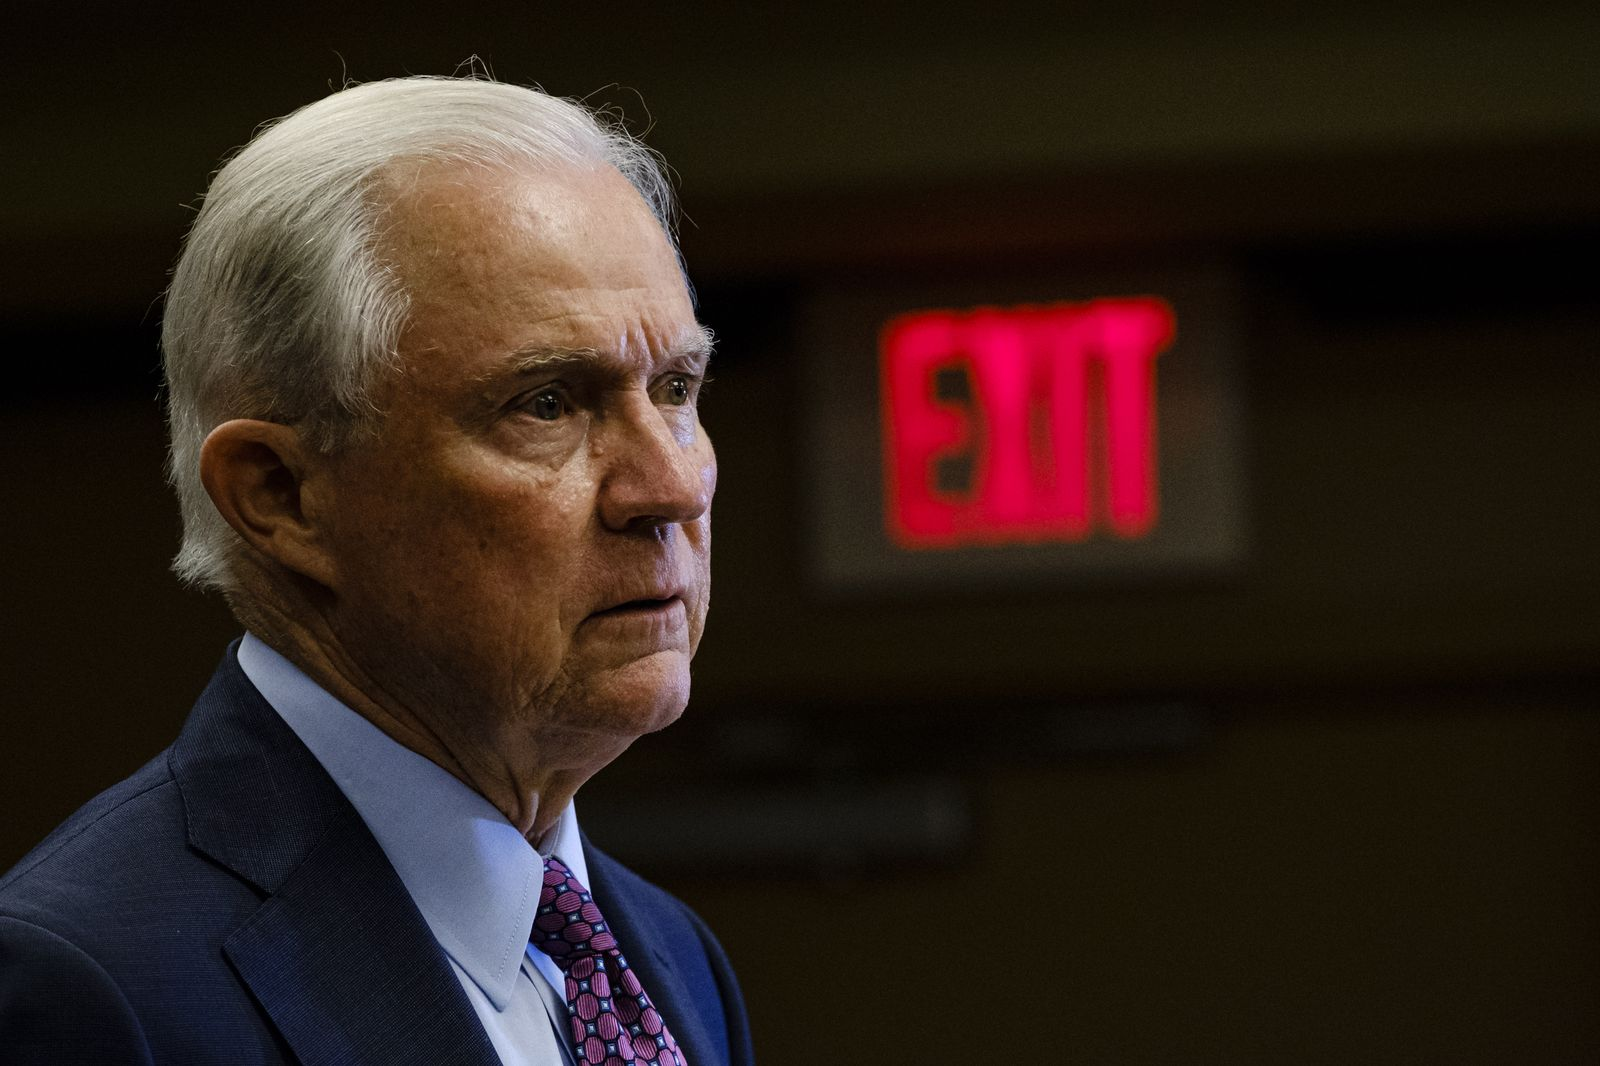 Jeff Sessions loses run-off election to Tommy Tuberville, Mobile, USA - 14 Jul 2020